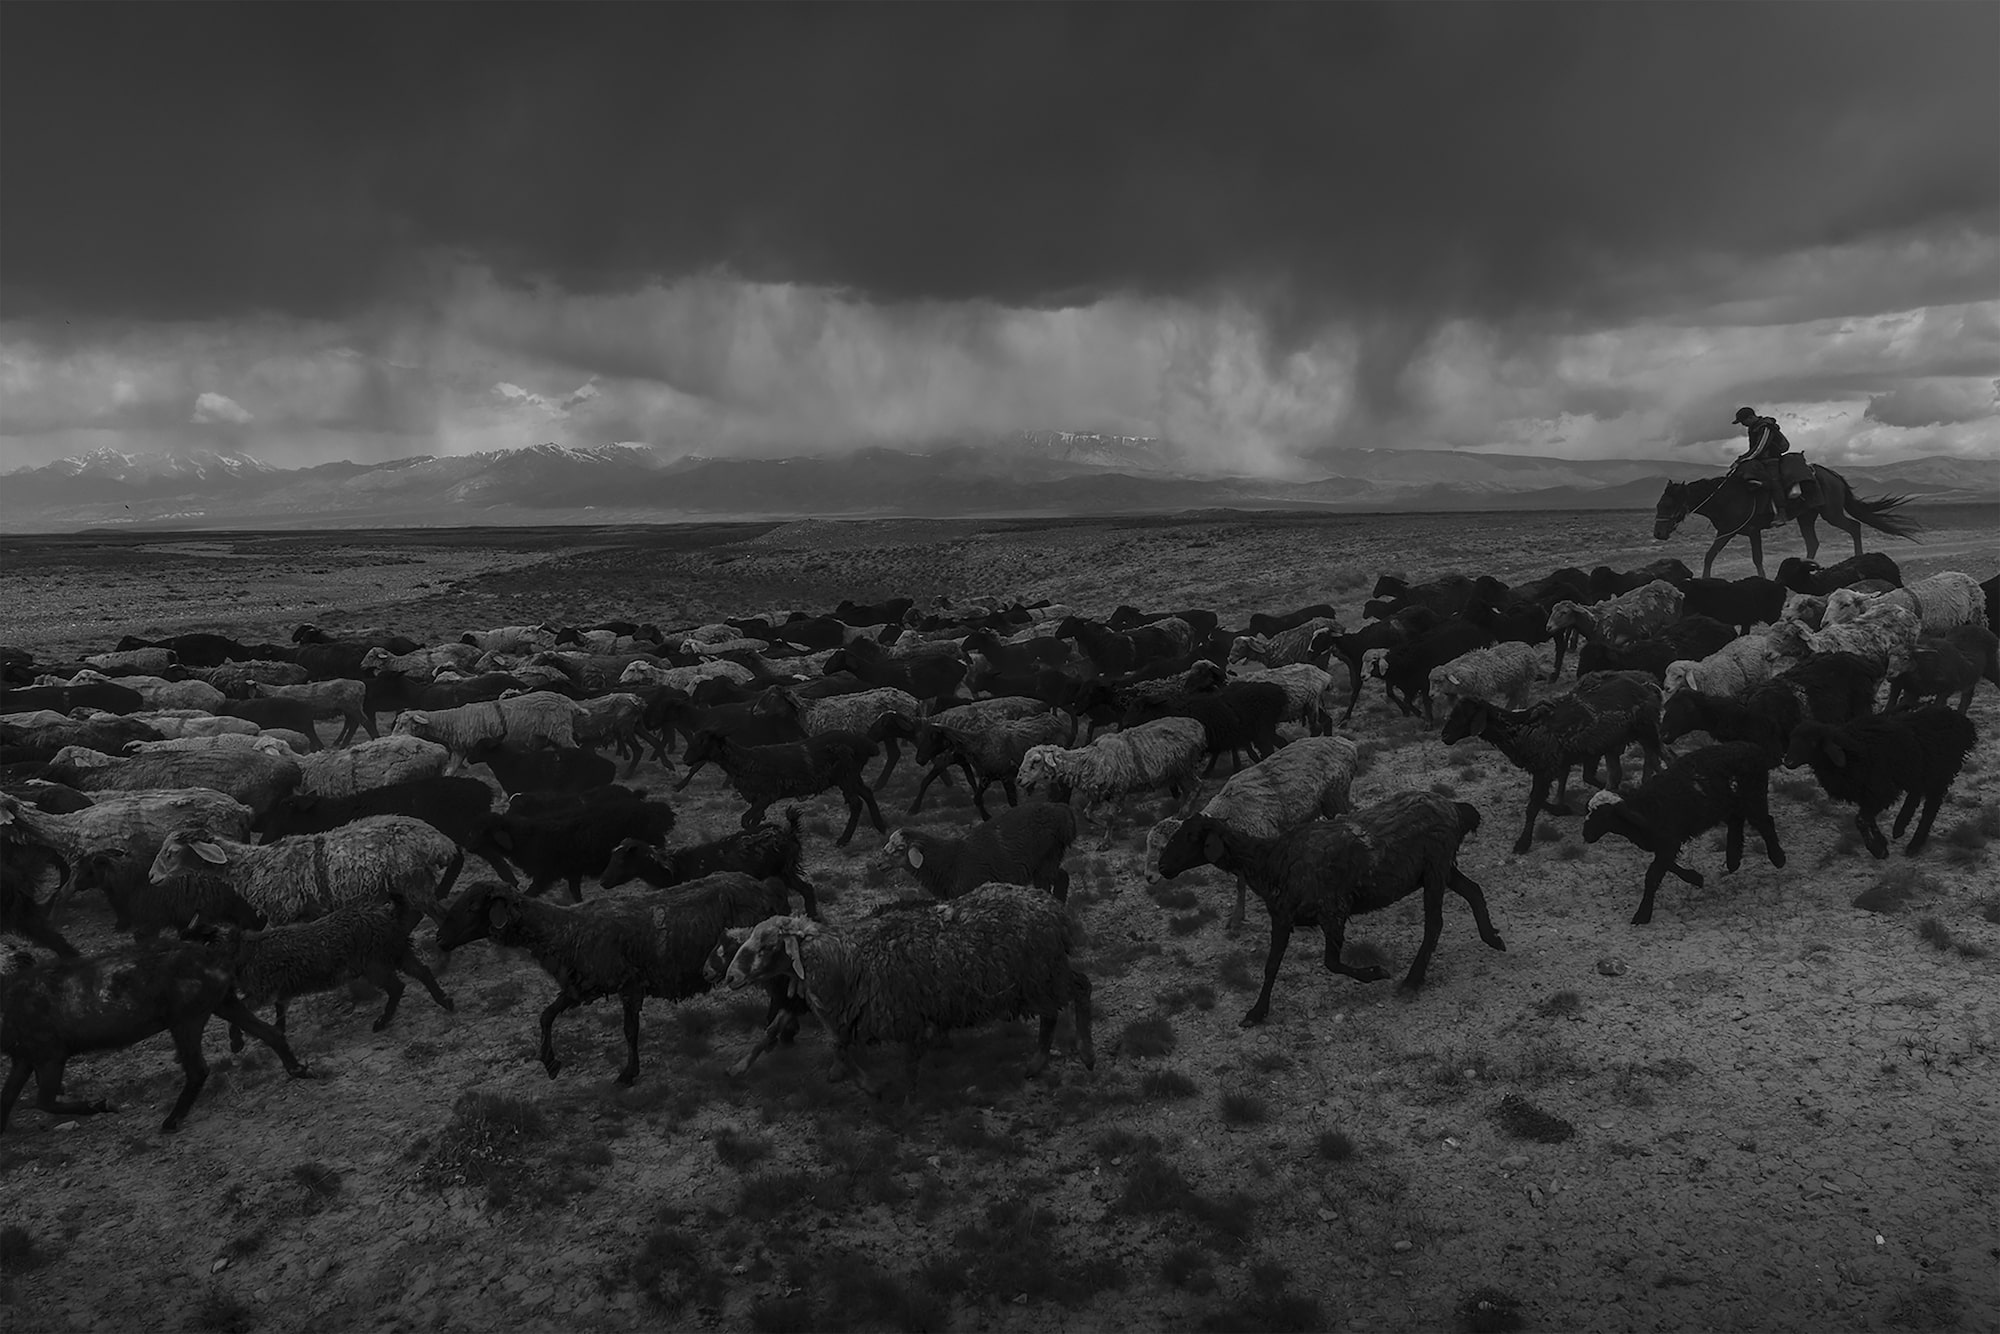 frederik buyckx sony alpha 7RM3 flock of sheep being herded across bleak terrain by a horseback shepherd